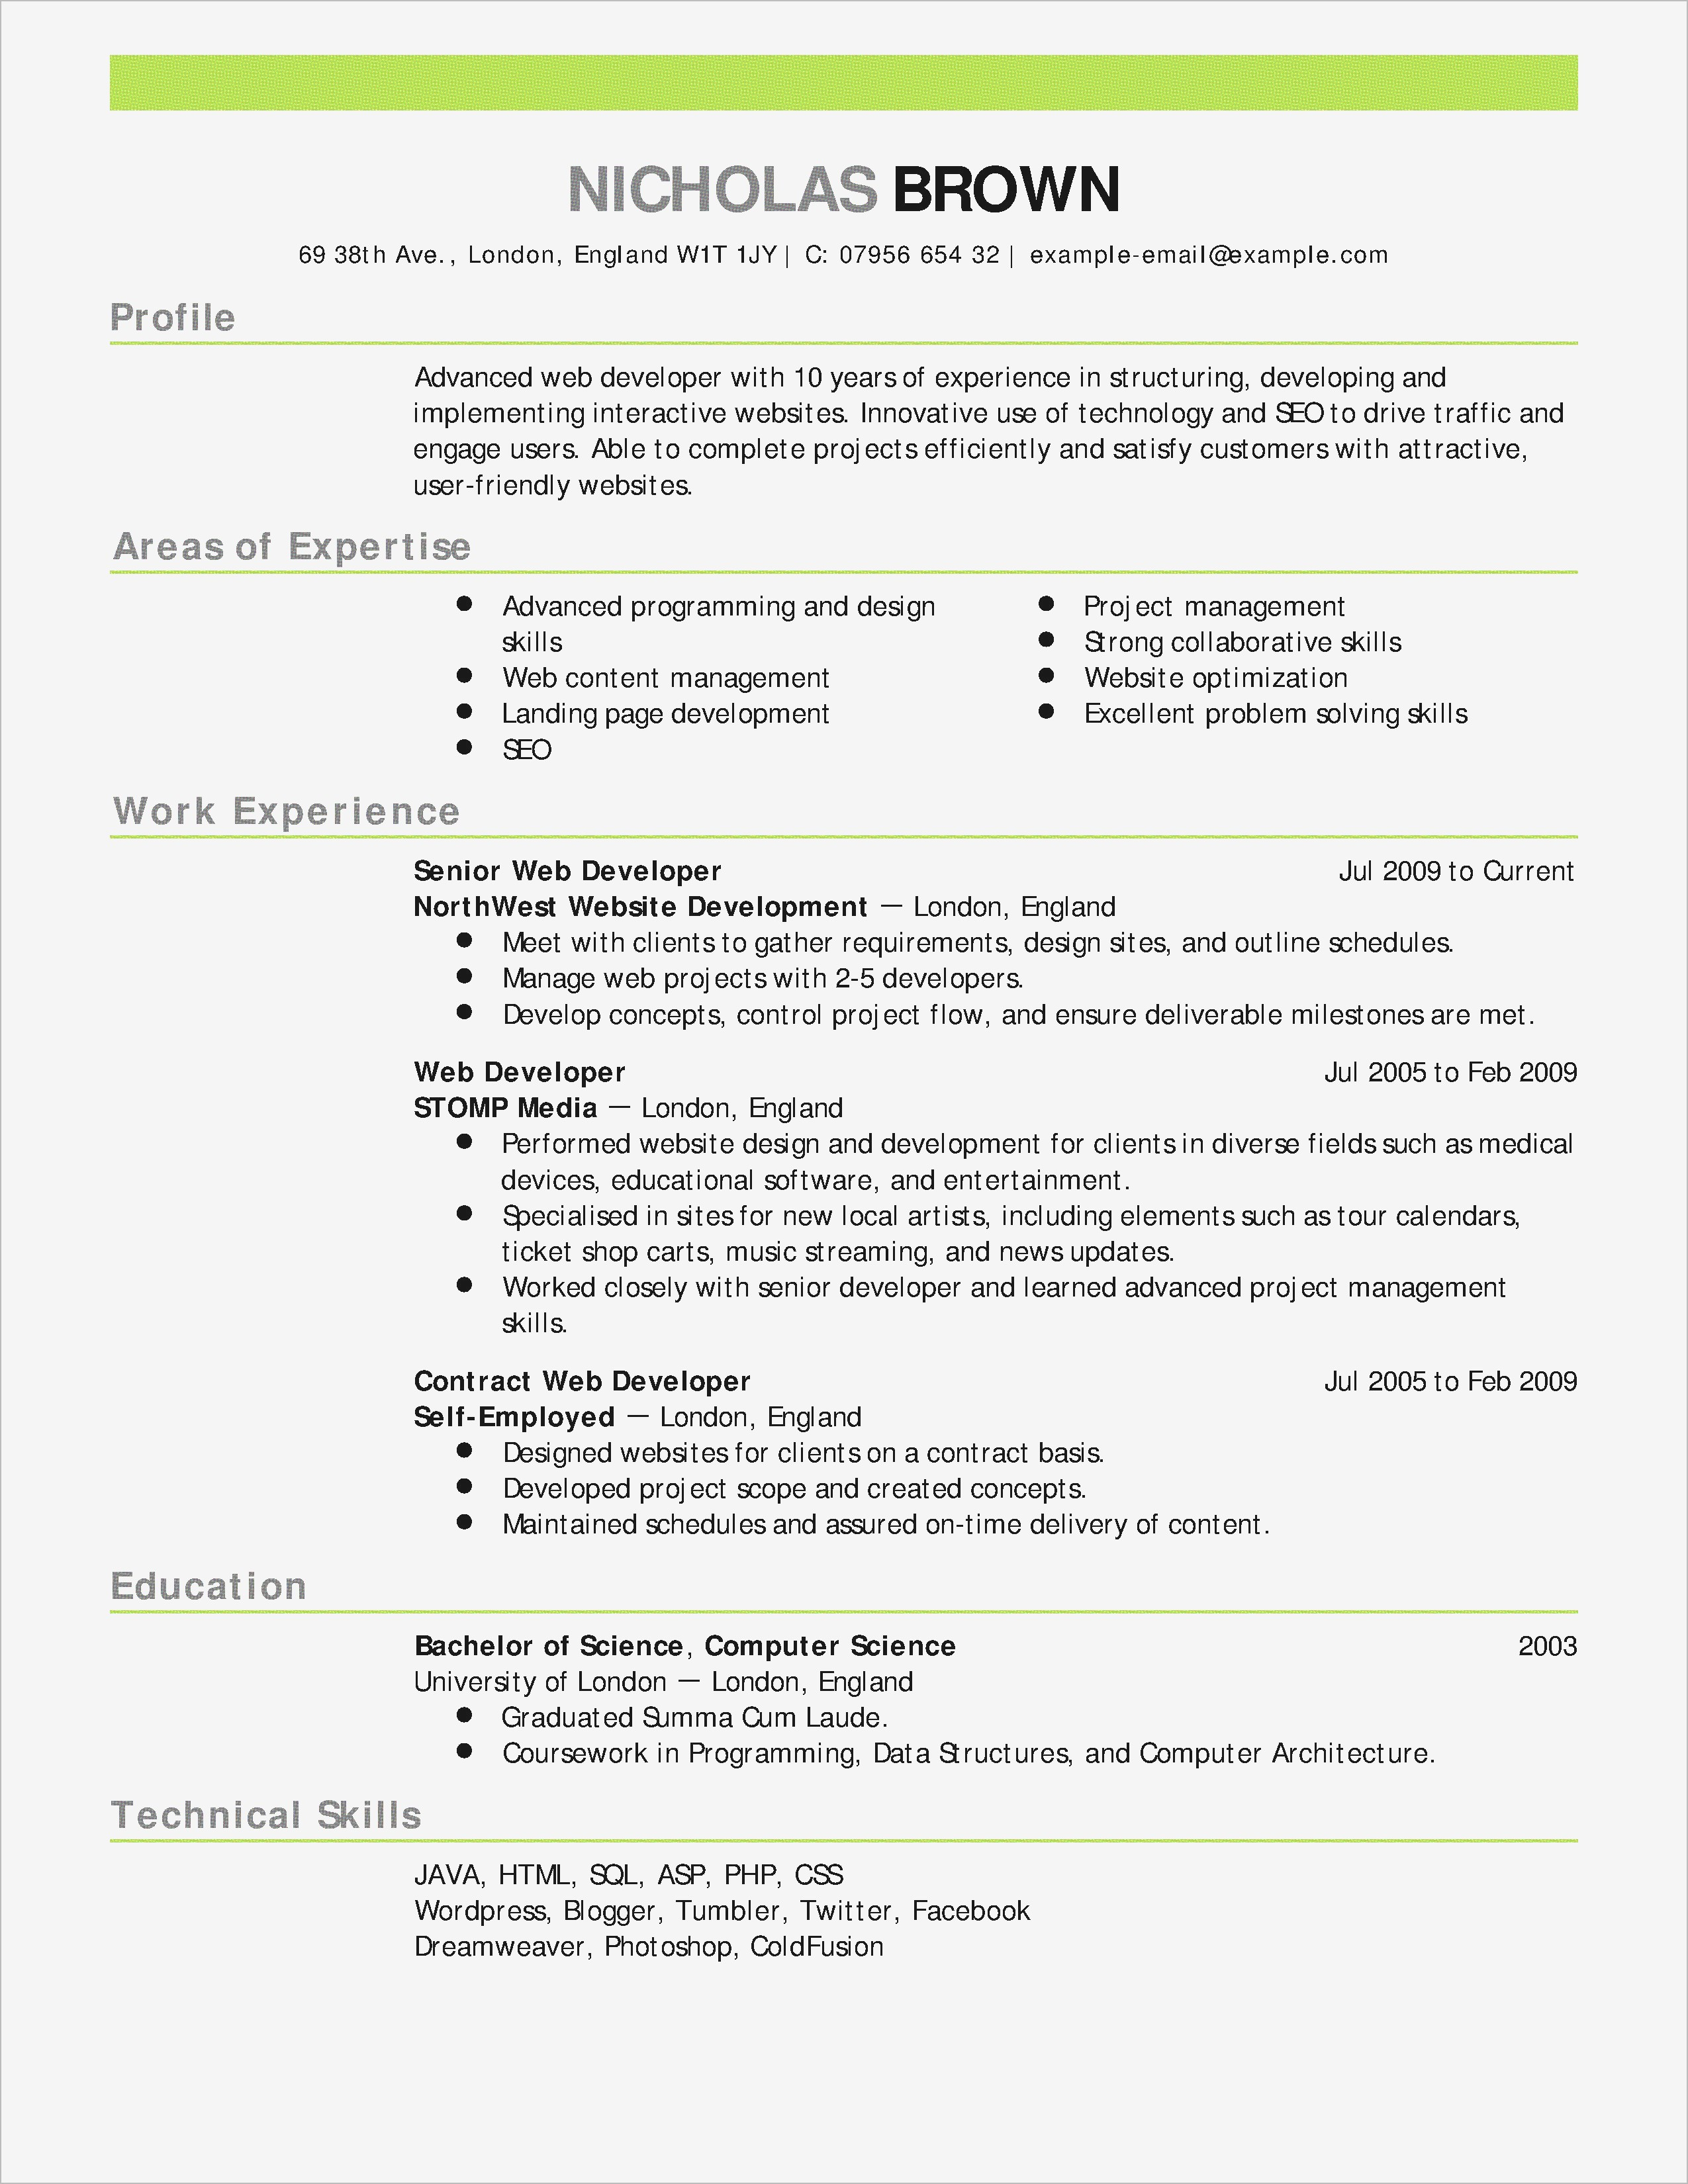 Letter of resignation template word 2007 samples letter templates letter of resignation template word 2007 beautiful letter resignation template microsoft spiritdancerdesigns Choice Image